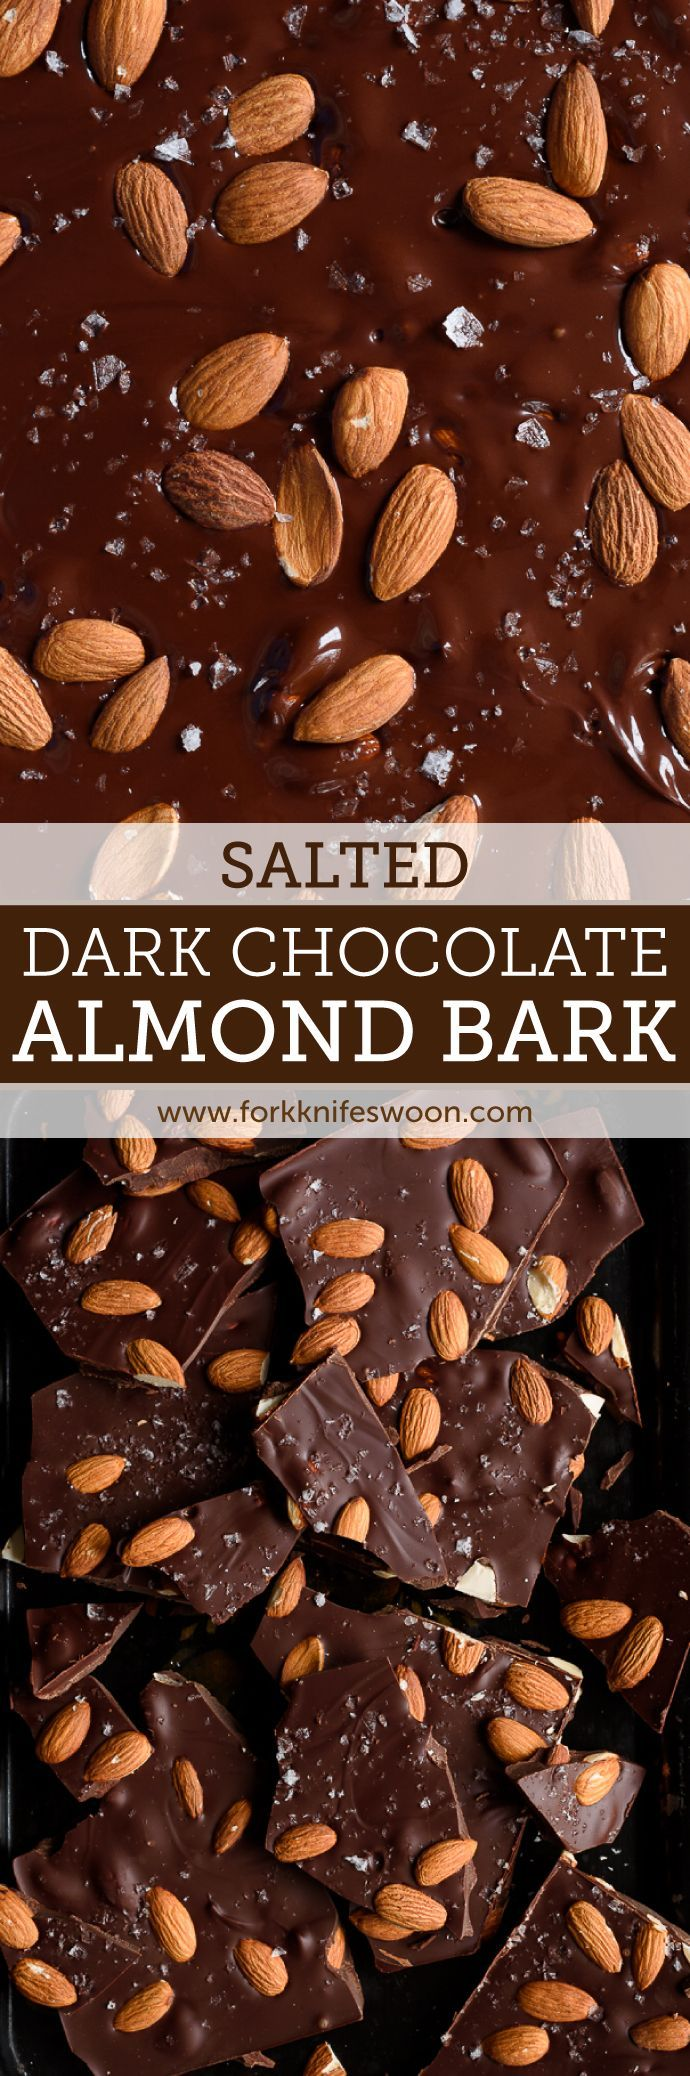 This salted dark chocolate almond bark is super easy and perfect for holiday gifting | via forkknifeswoon.com